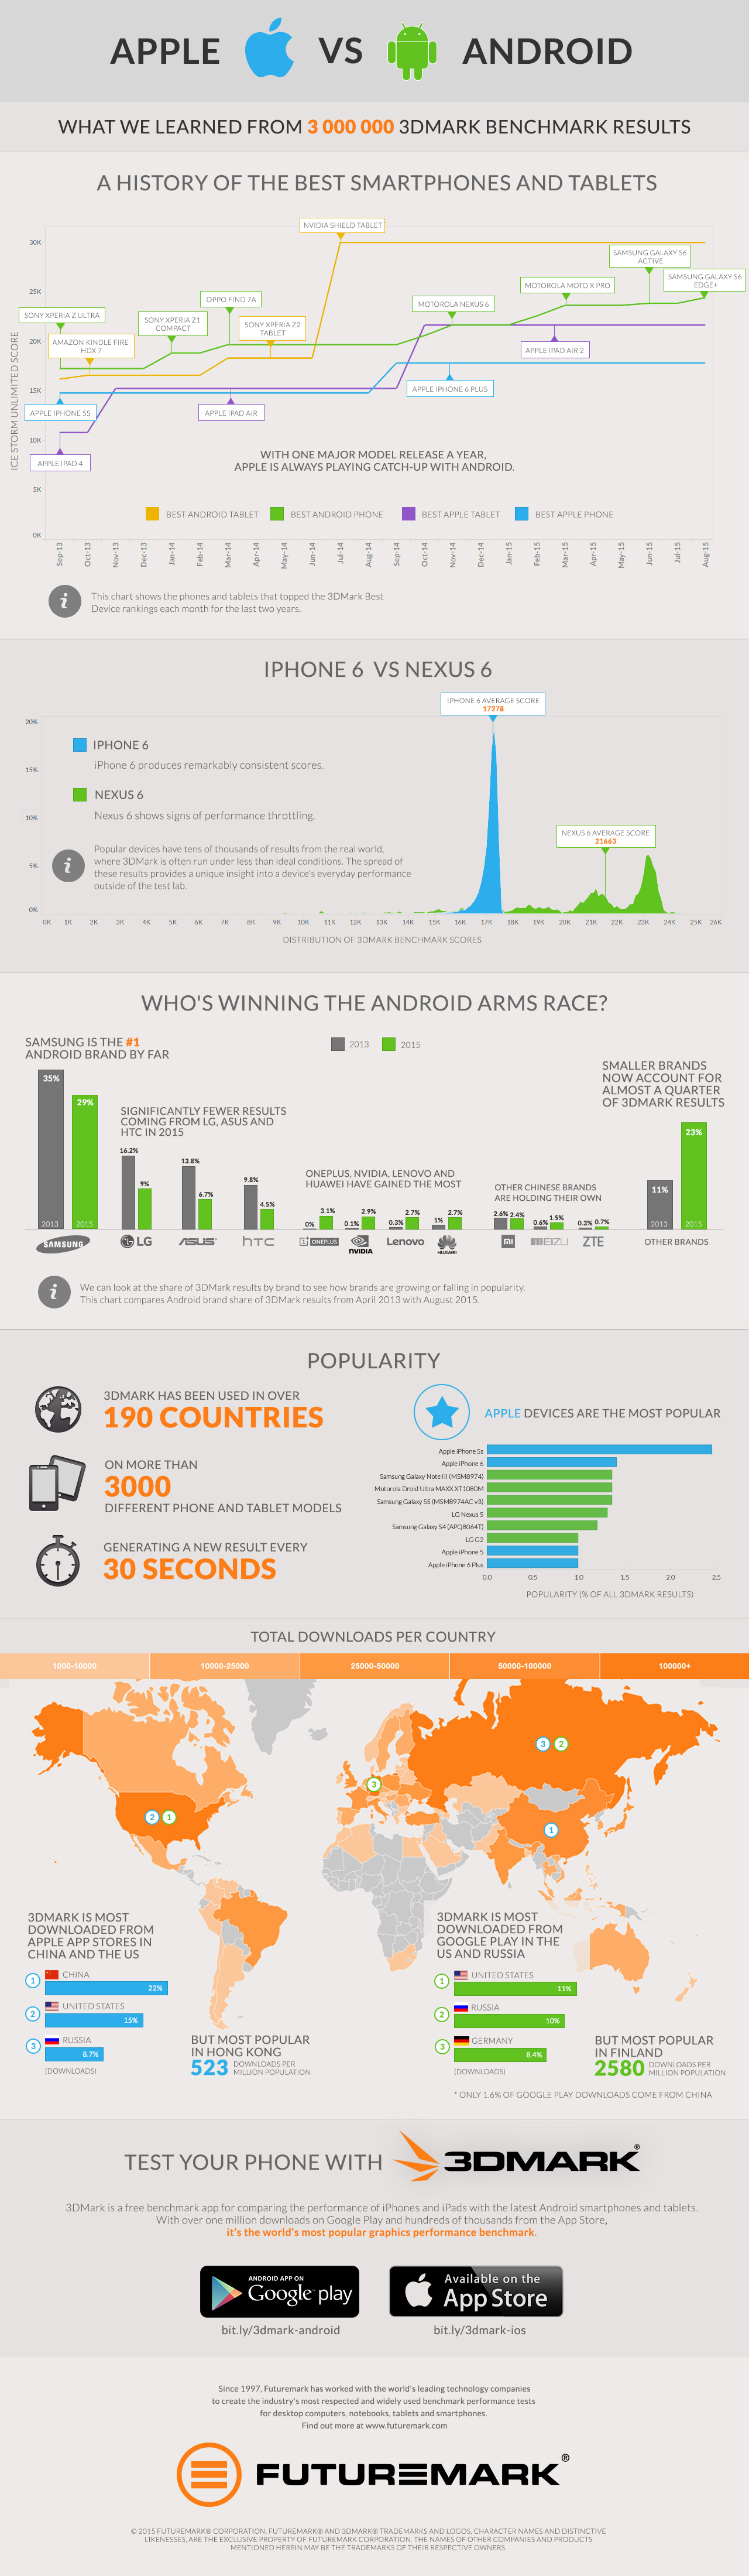 3dmark-infographic-apple-vs-android